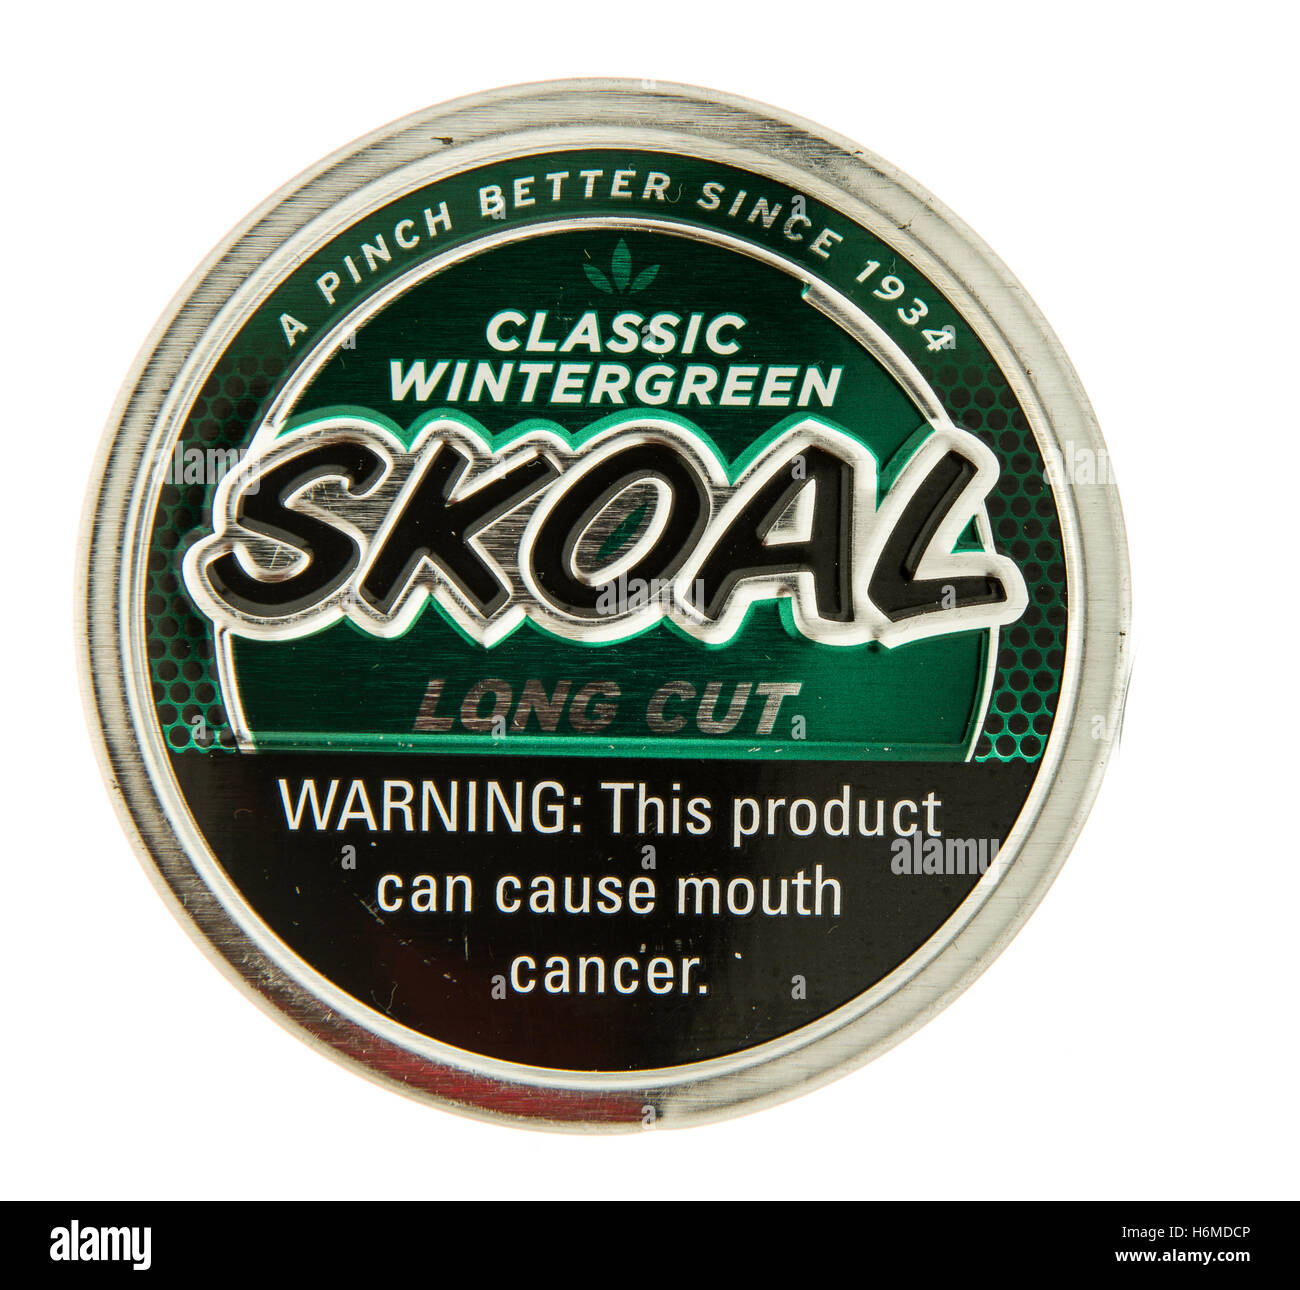 Winneconne, WI - 29 October 2016: Can of Skoal chewing ...